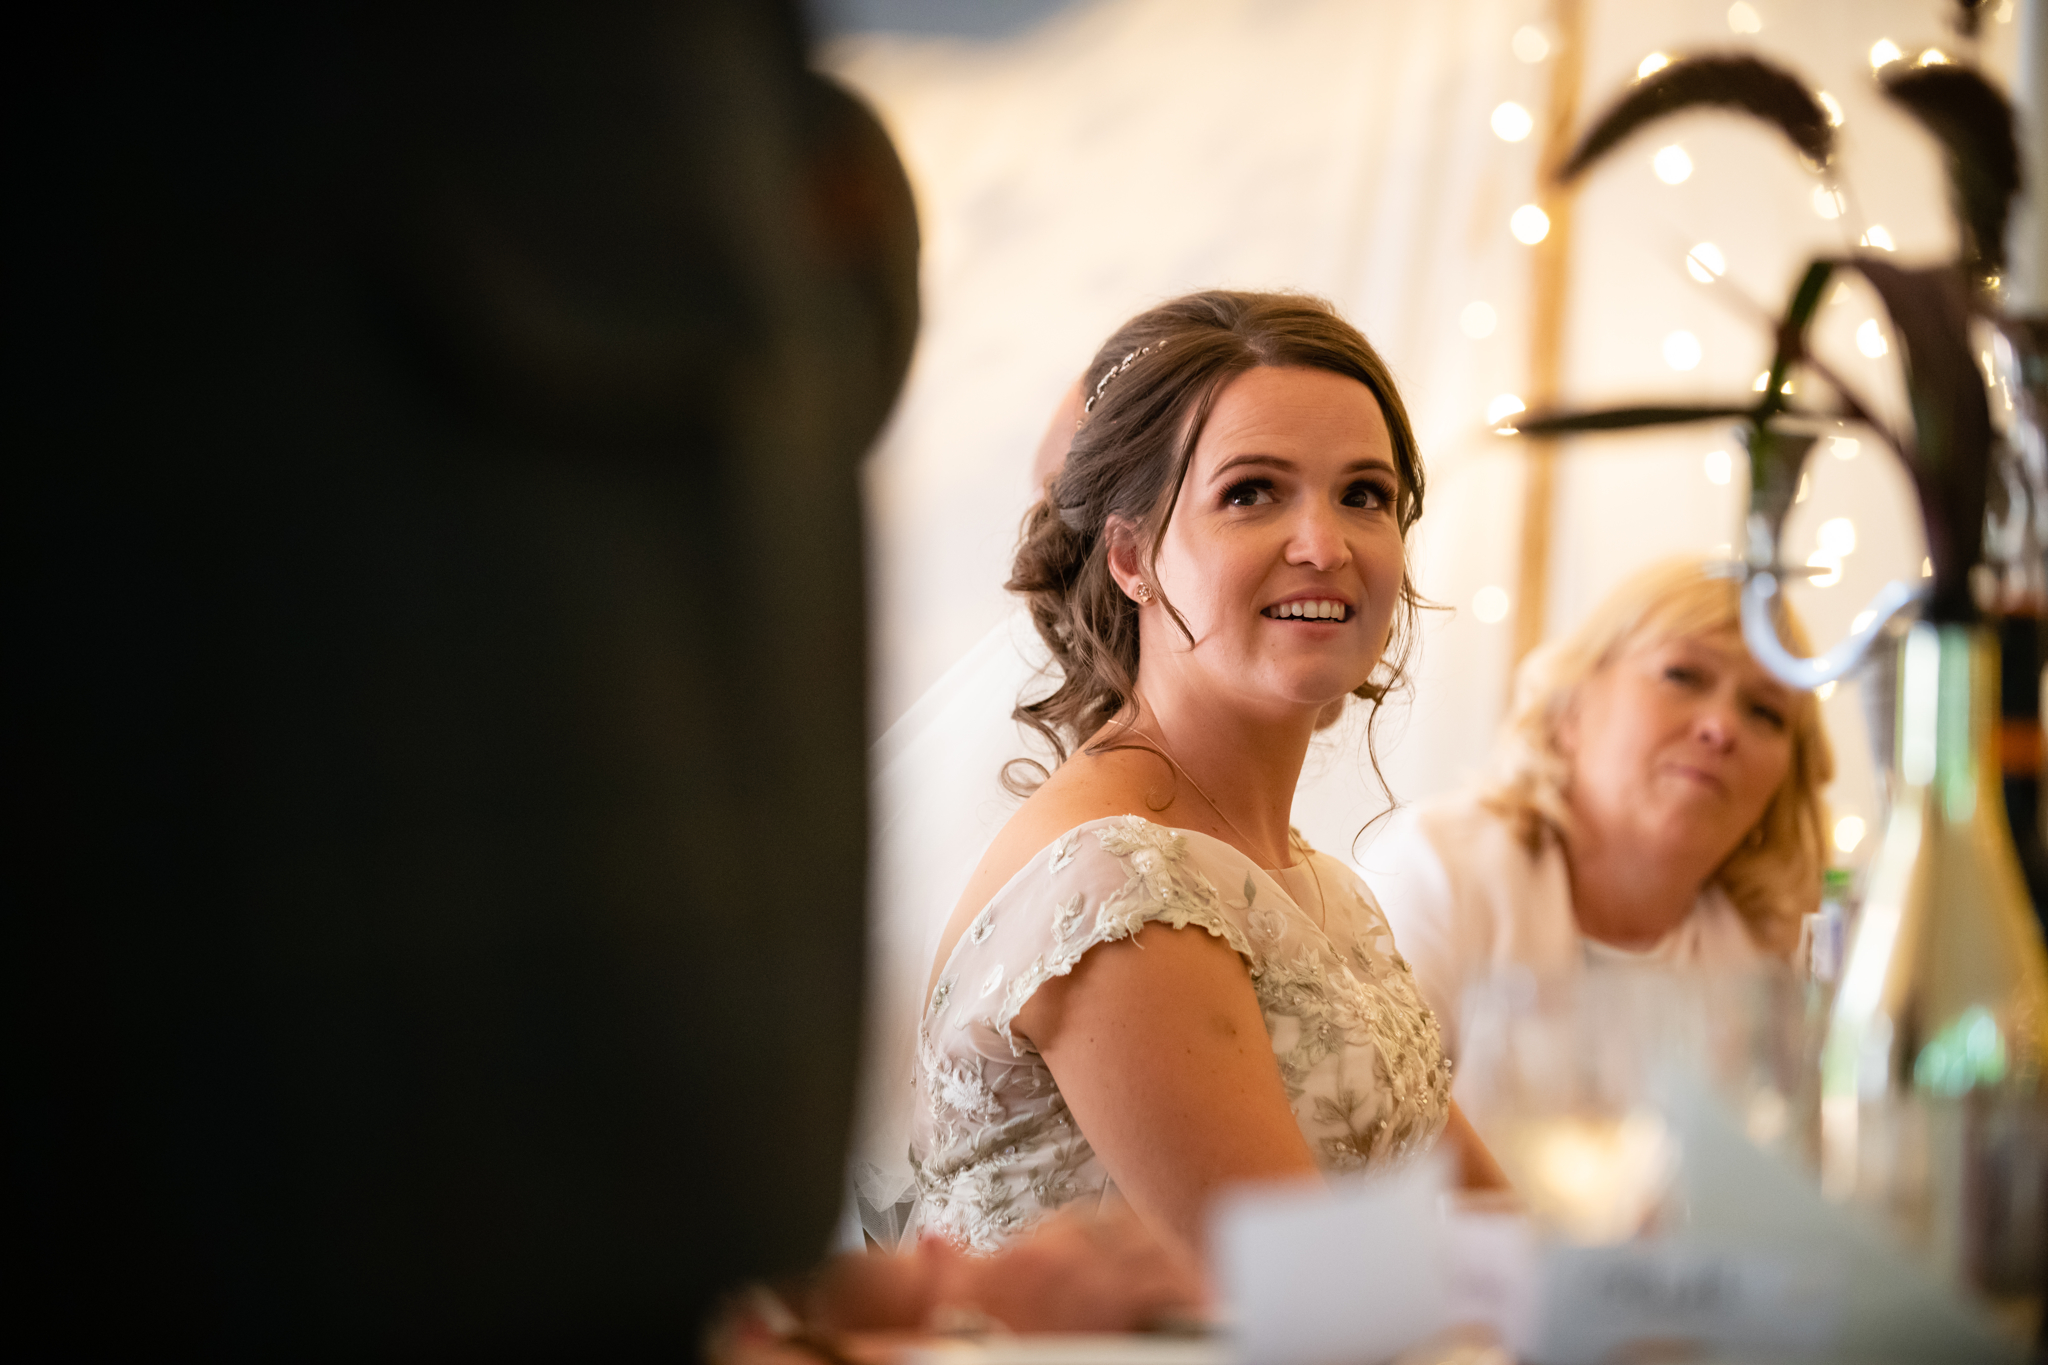 The bride during the speeches